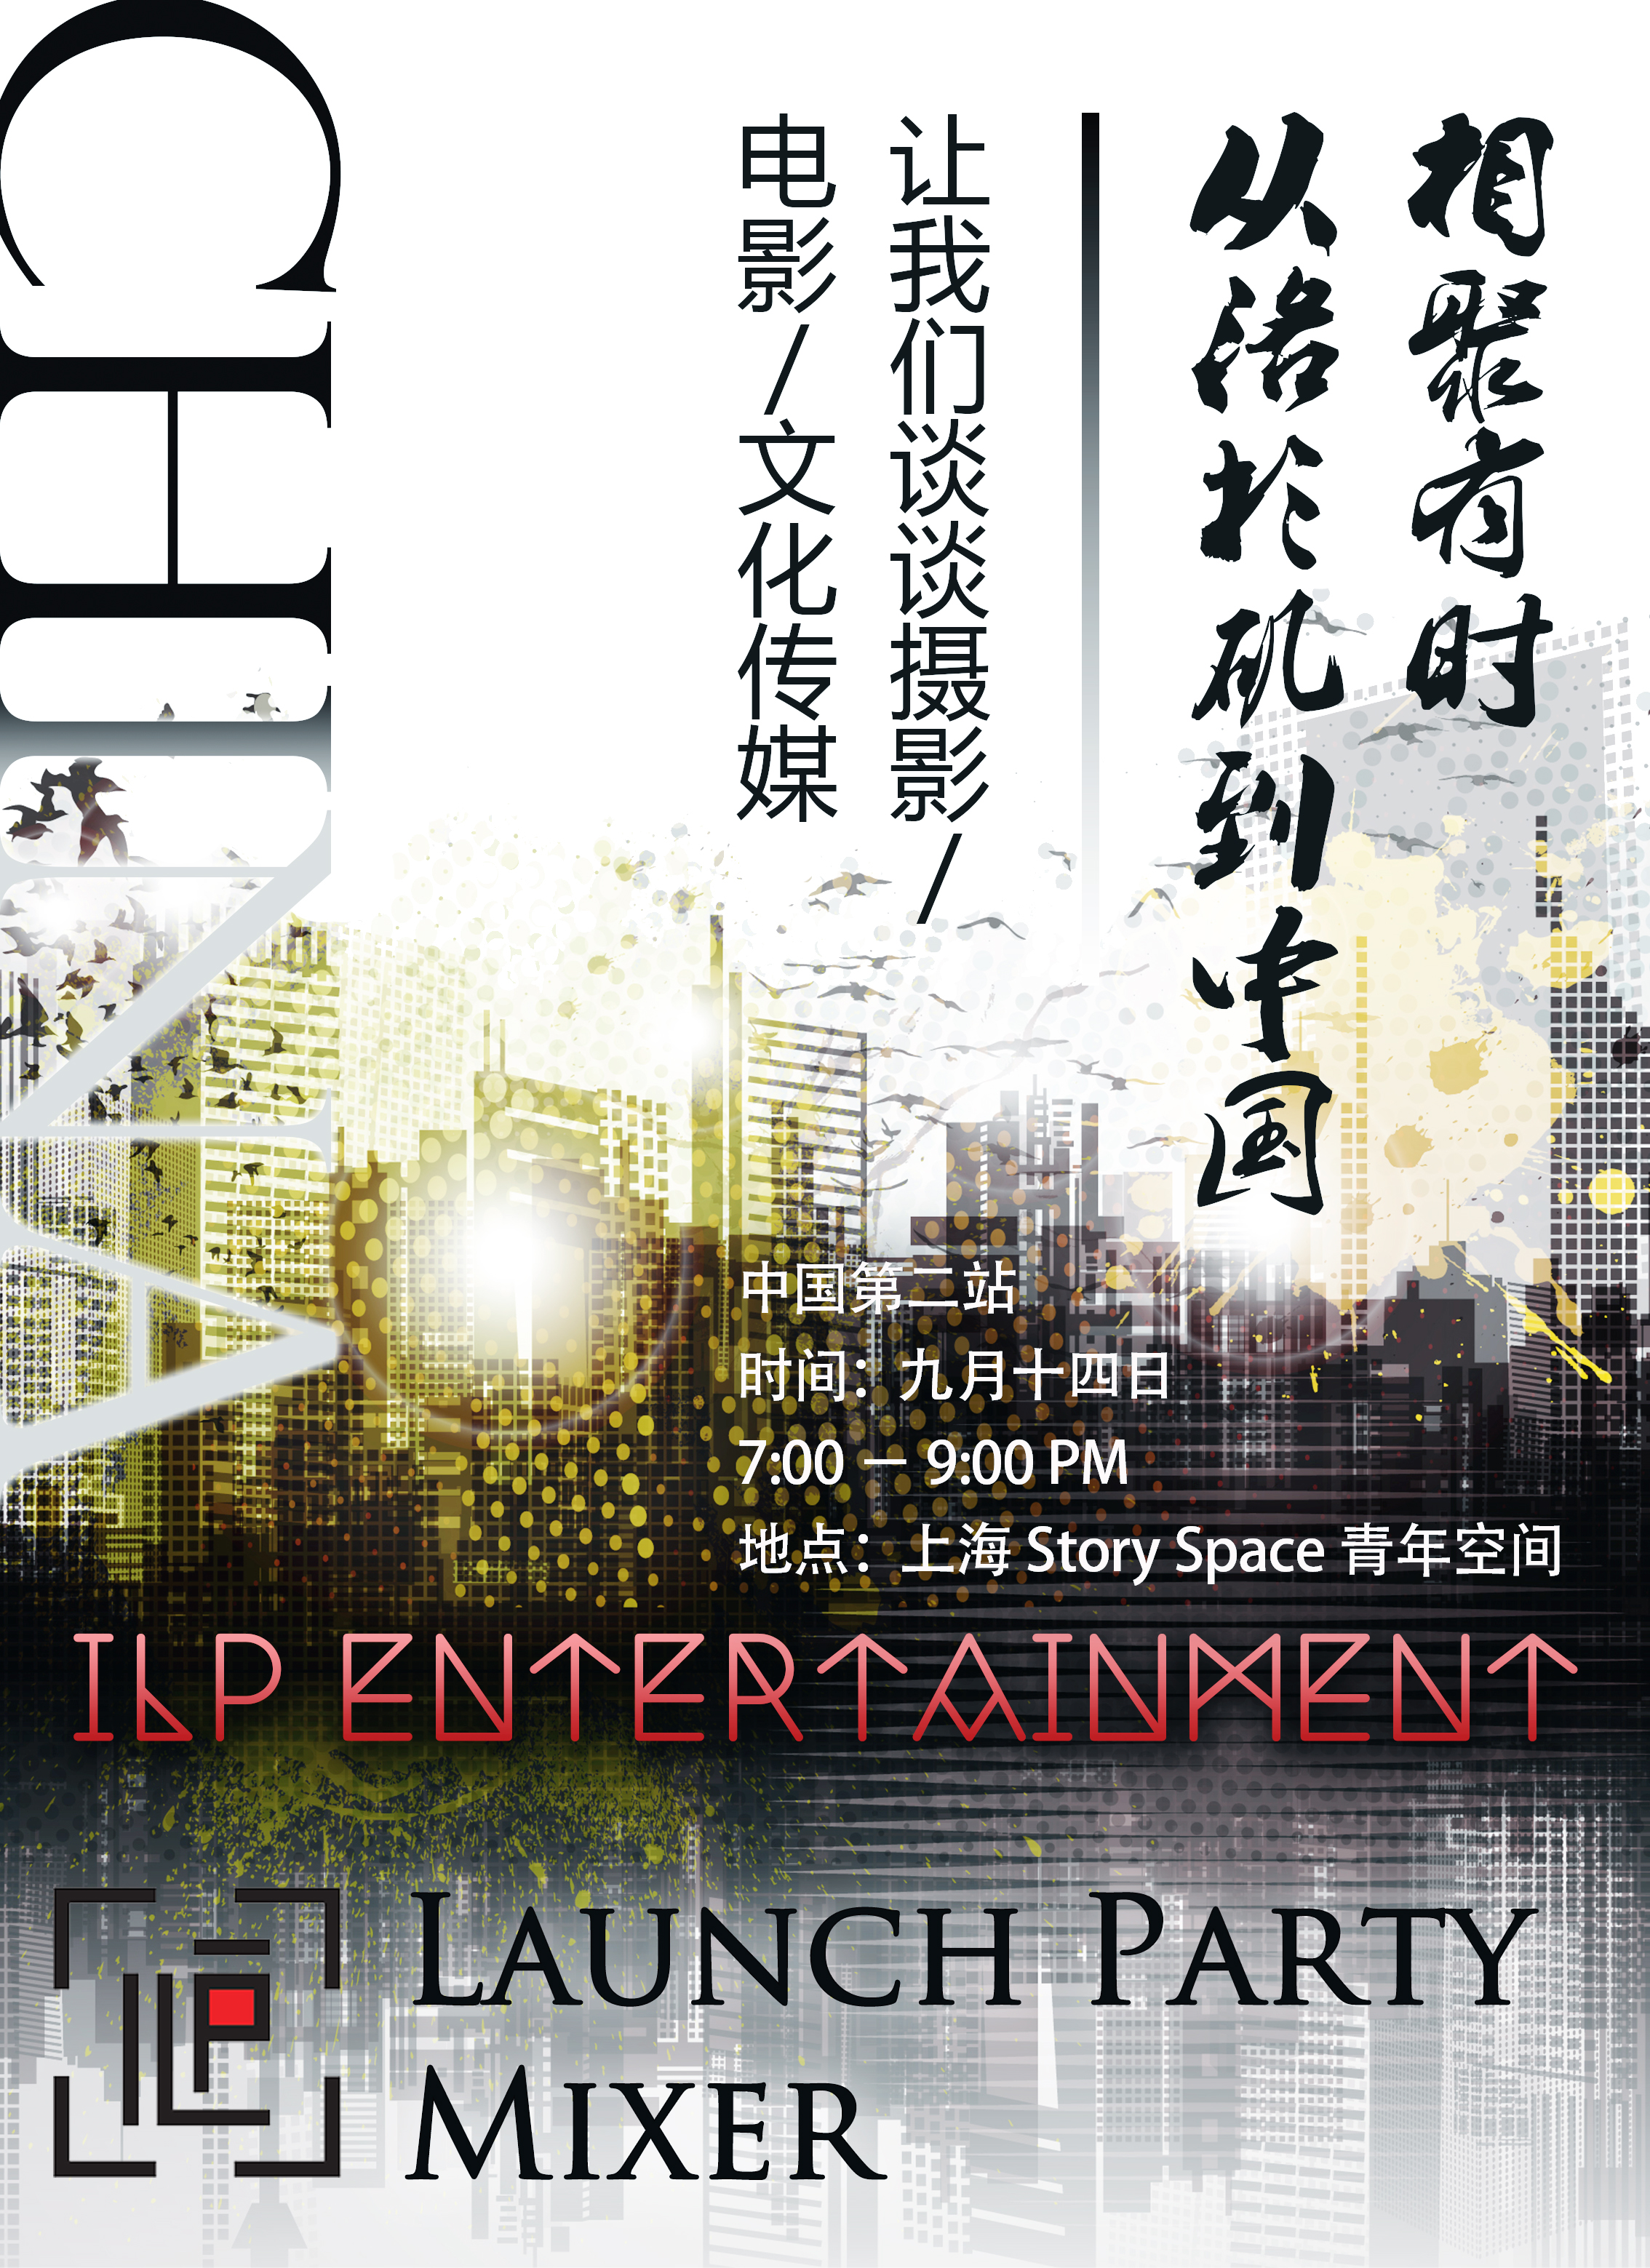 ILP Launch Party Mixer in Shanghai Poster